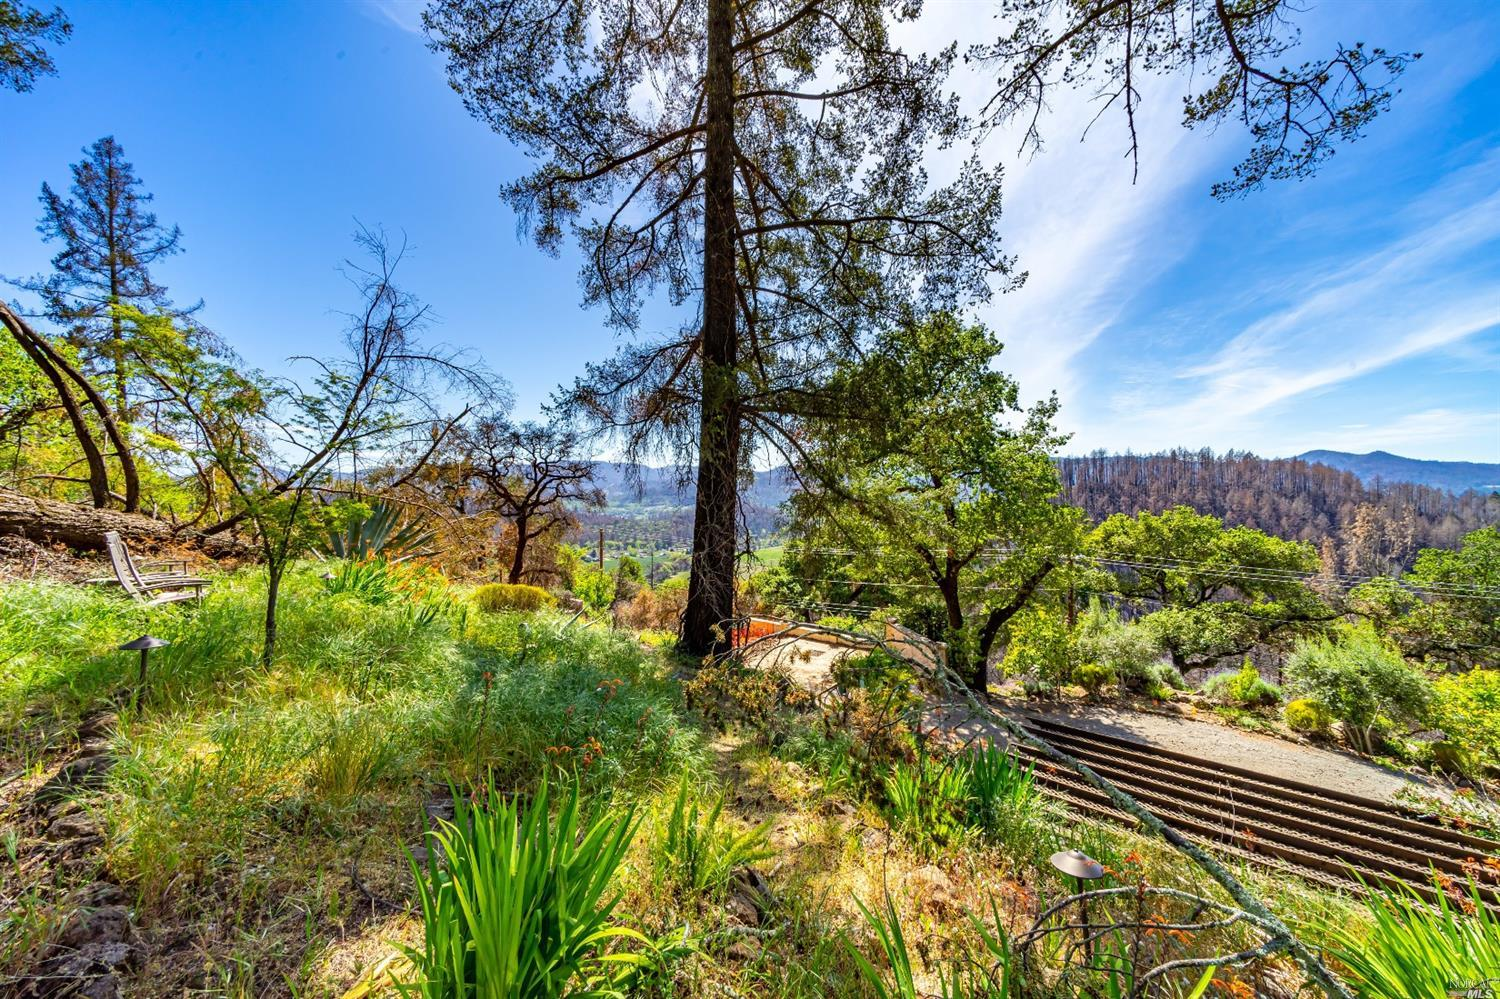 This unique view land offering is suitable for a luxury home close to town. The Northwest facing views take in magnificent sunsets, glimmering valley lights, and the distant mountains. The residential parcel offers 0.97+/- acre of prime buildable land and is moments from Downtown St Helena. When visiting, one would immediately notice the sense of privacy, elevation, and sprawling tiers of native landscape. The location grants a country feel down private lane. Bedrock and stone elements mixed with backdrops of mature trees make this a true rare find. Buyer to confirm utilities that may be available for use onsite.